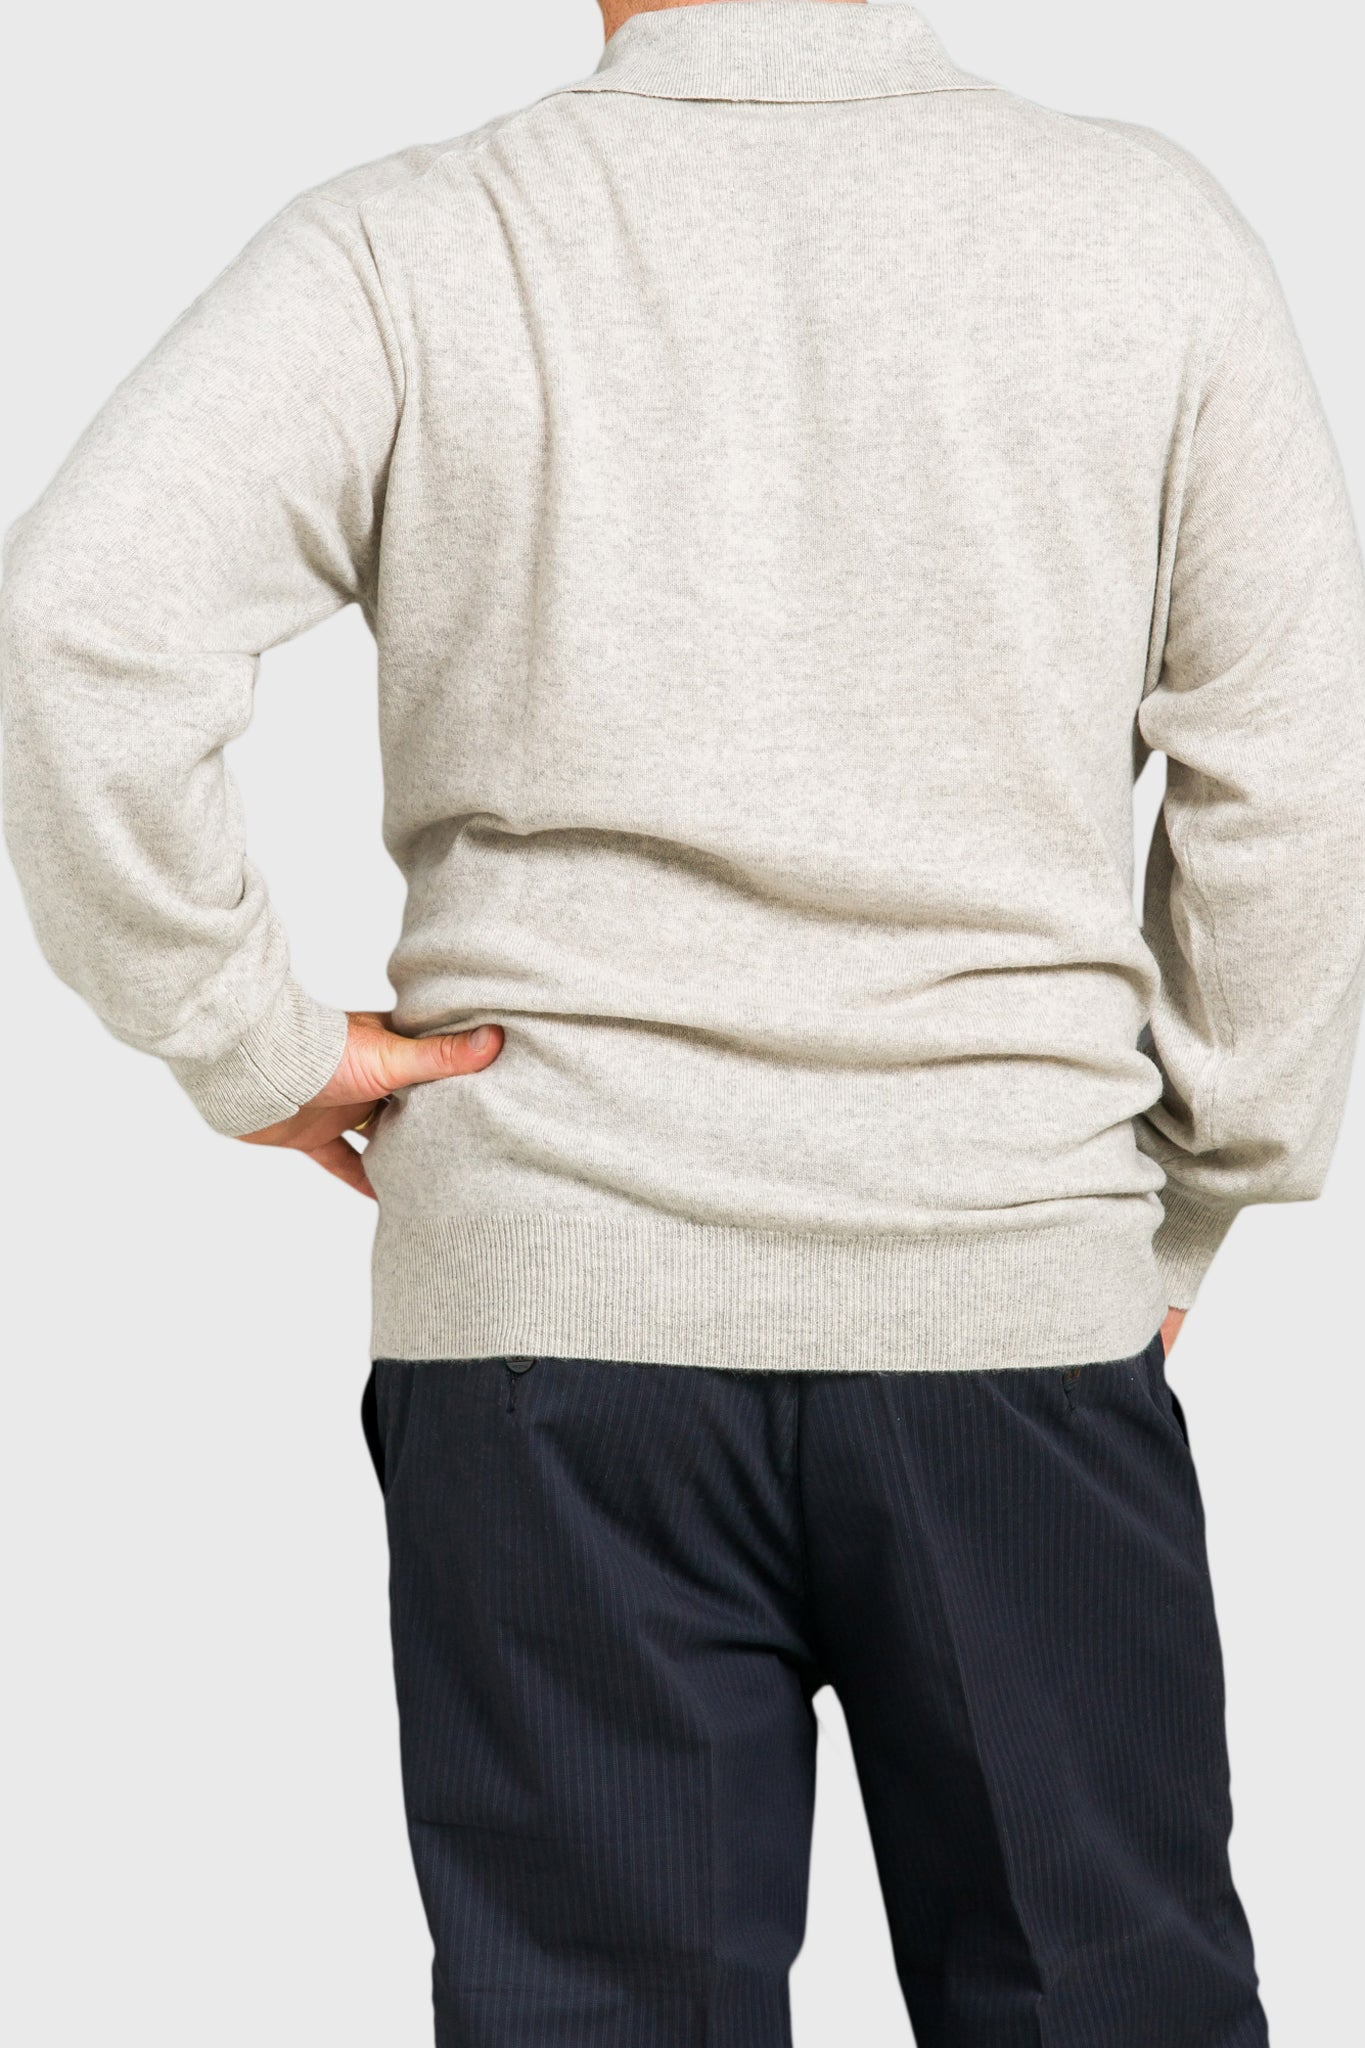 Trish Gregory Cashmere Men's Tab Sweater